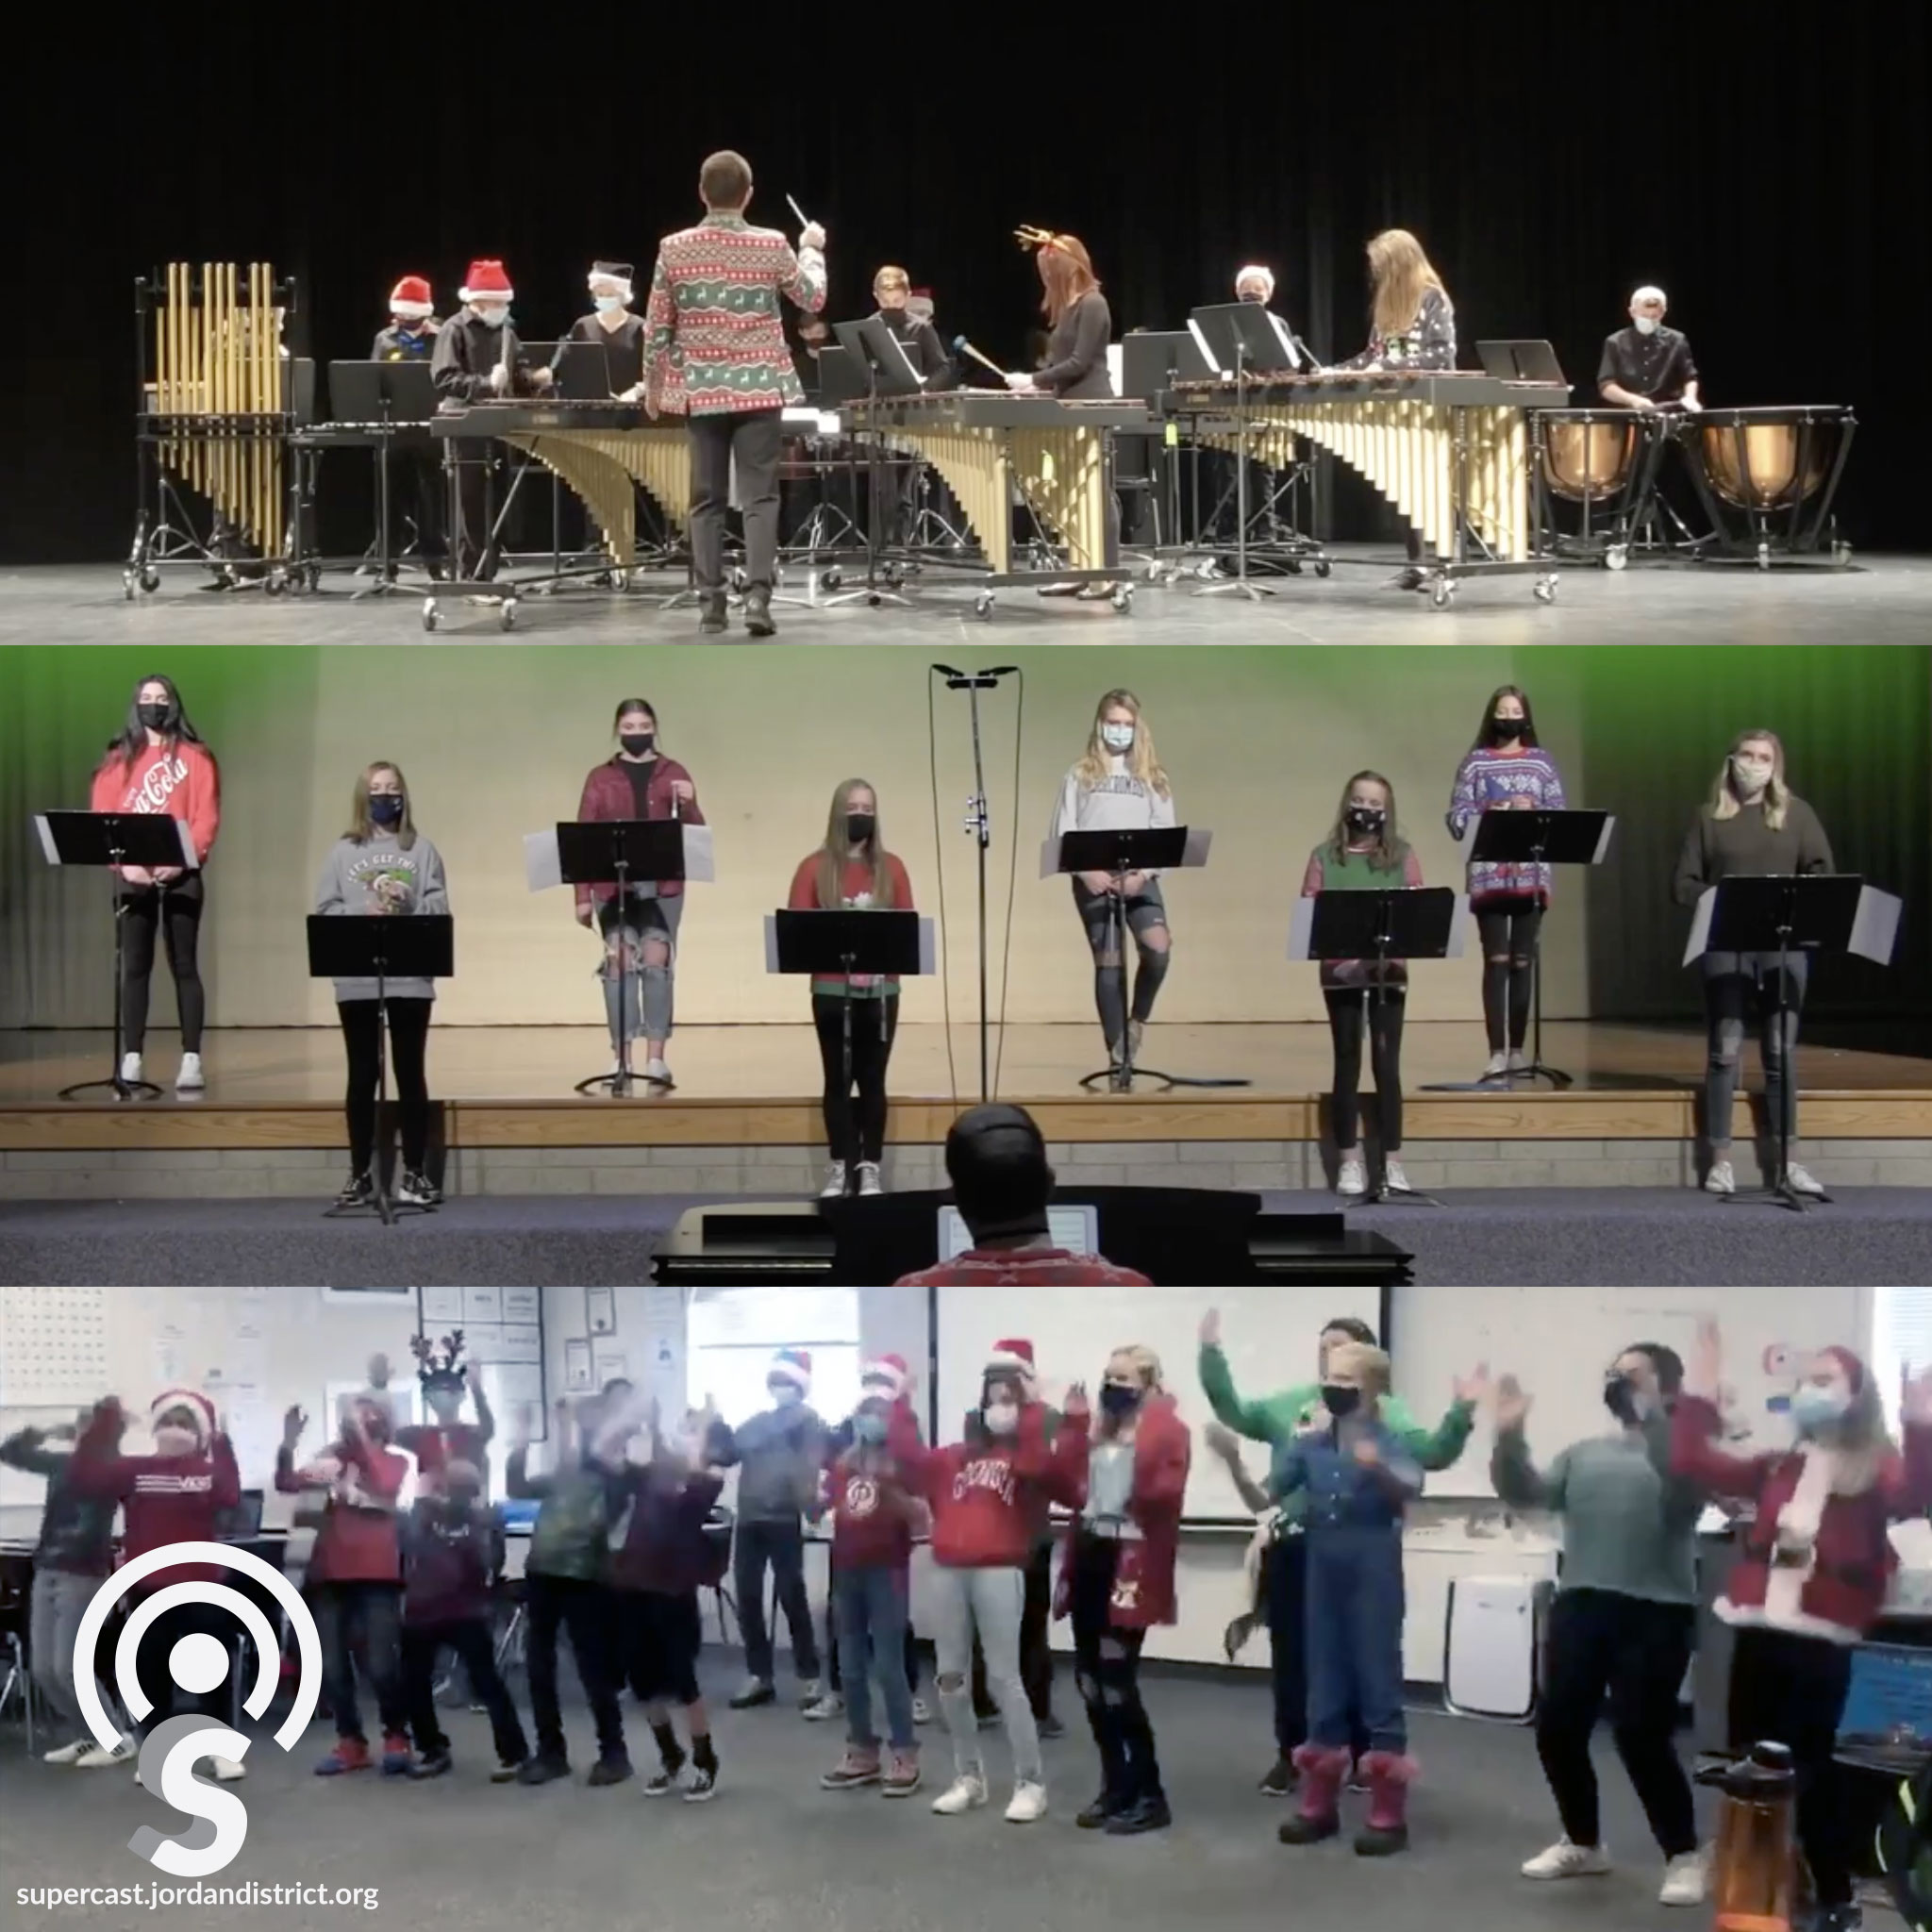 Groups performing holiday music